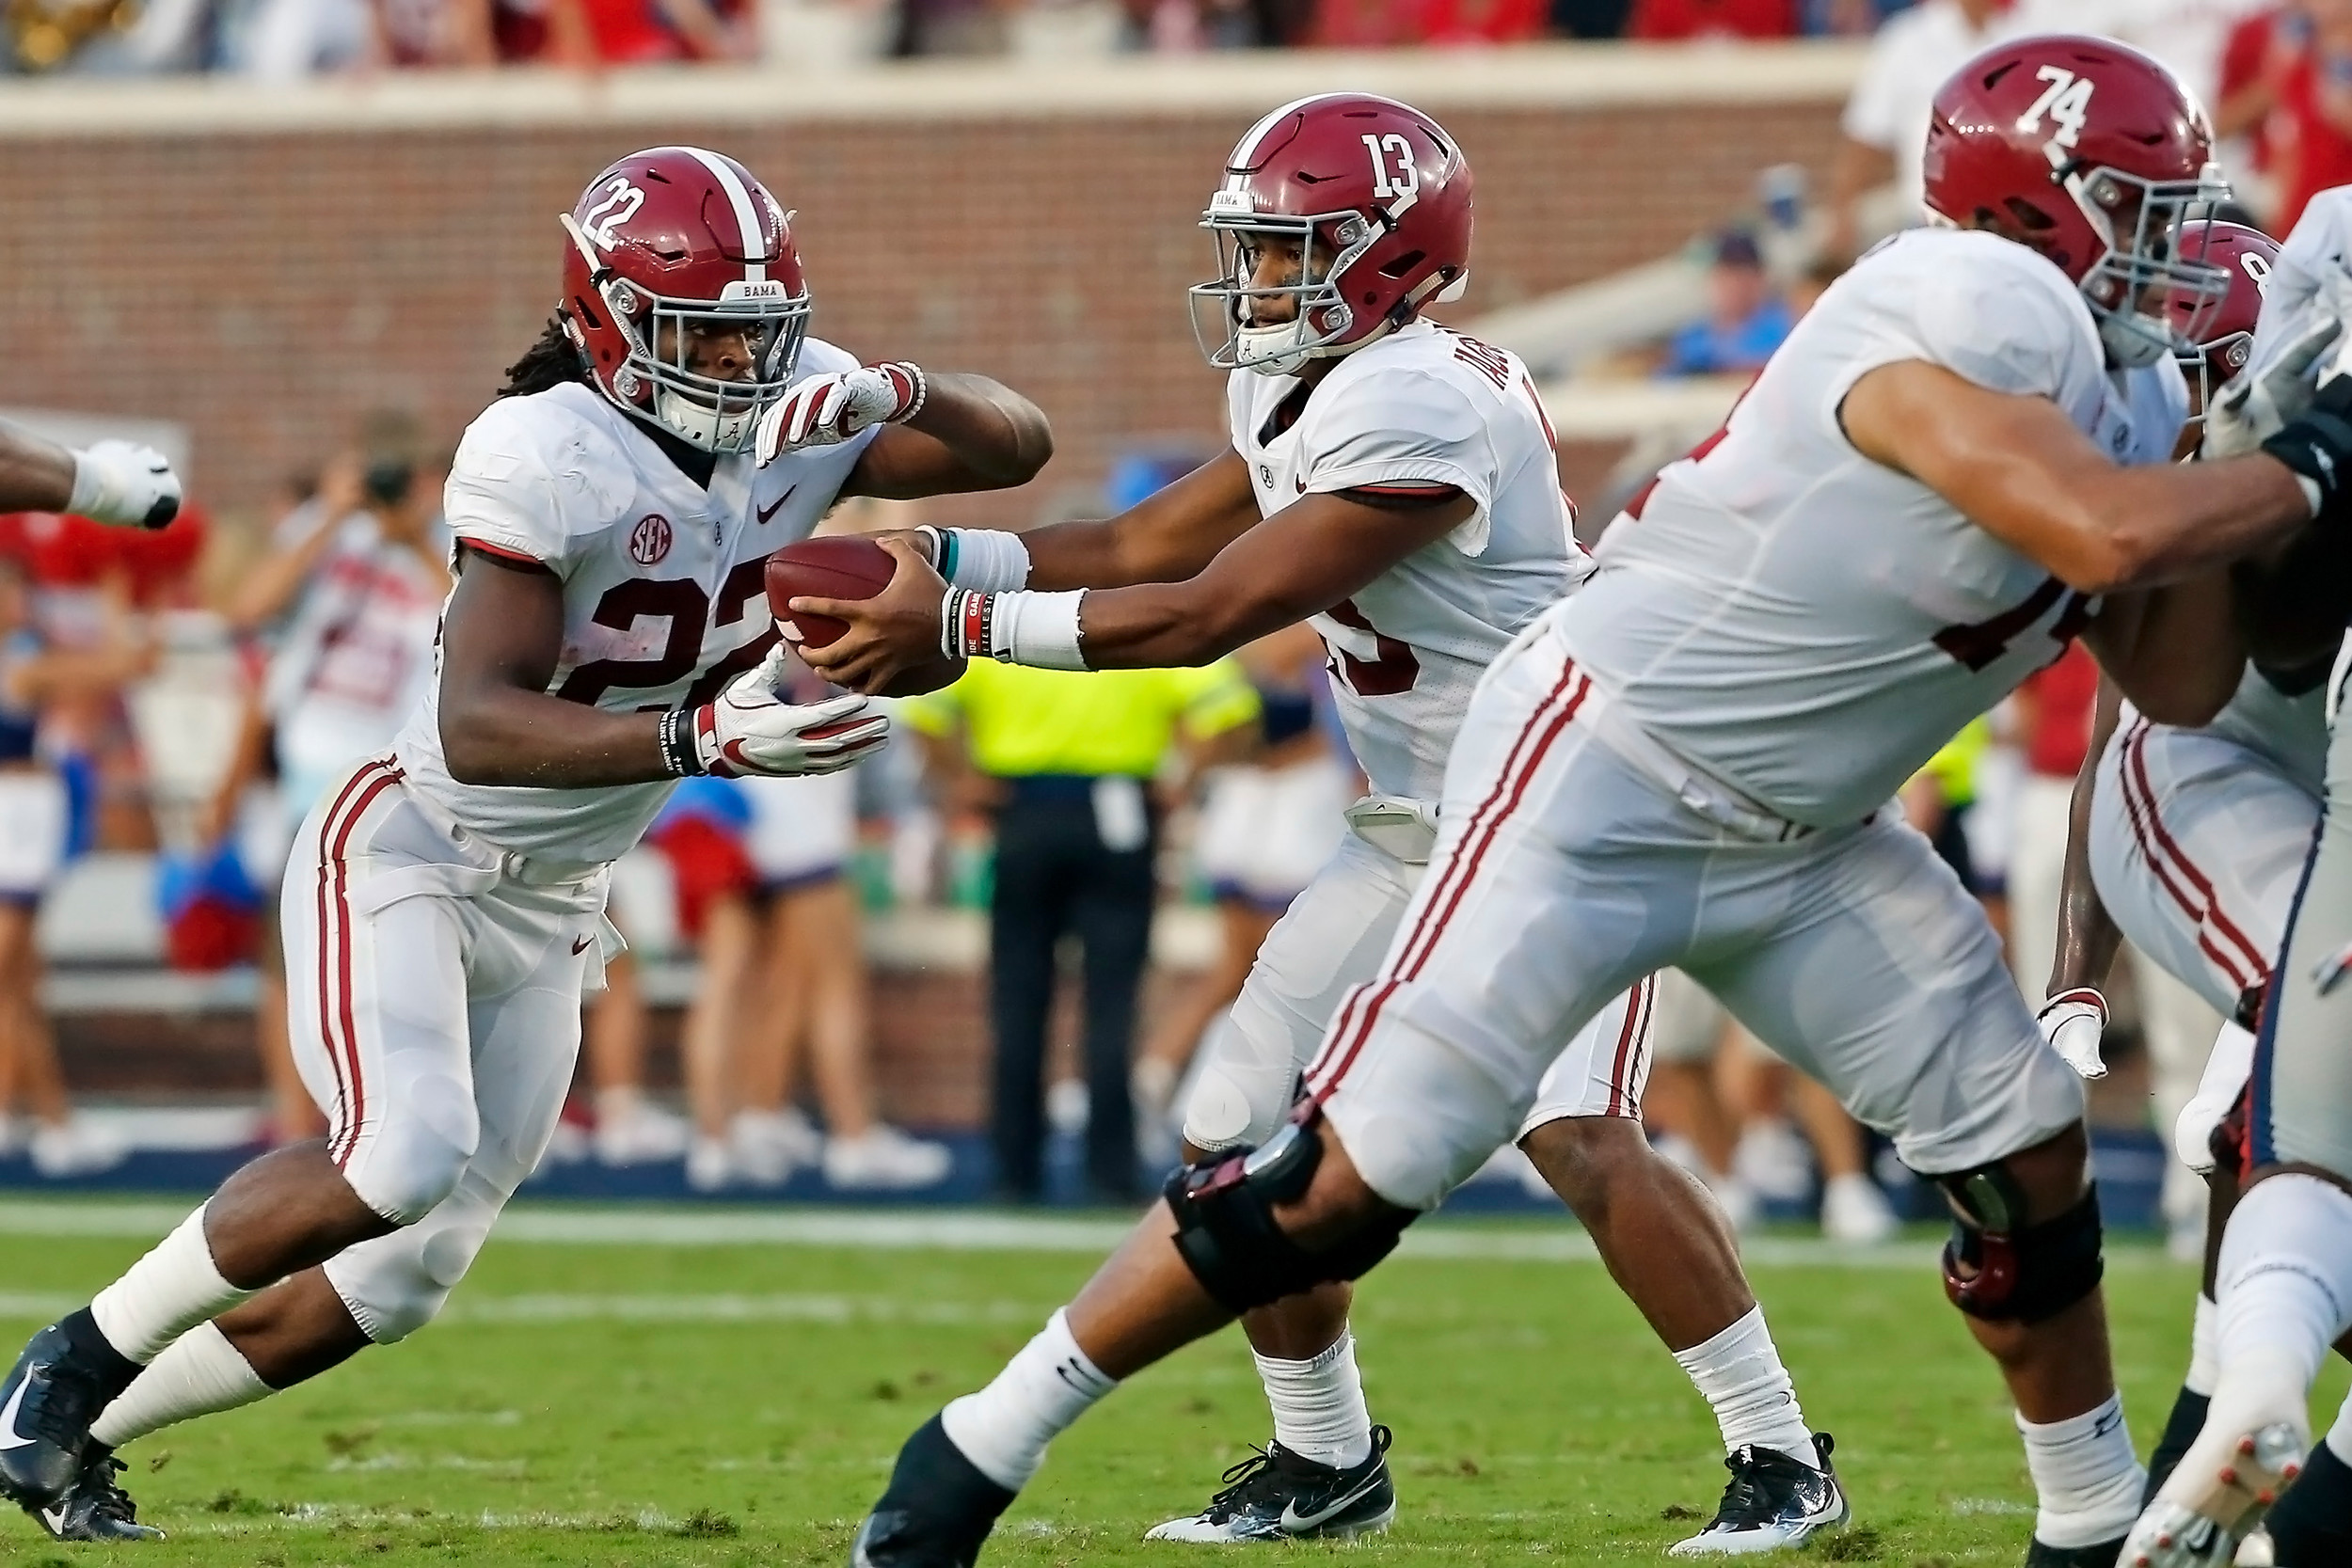 Alabama Crimson Tide quarterback Tua Tagovailoa (13) hands off to running back Najee Harris (22) during the game between the University of Alabama and Ole Miss at Vaught-Hemingway Stadium. Jason Clark / Daily Mountain Eagle